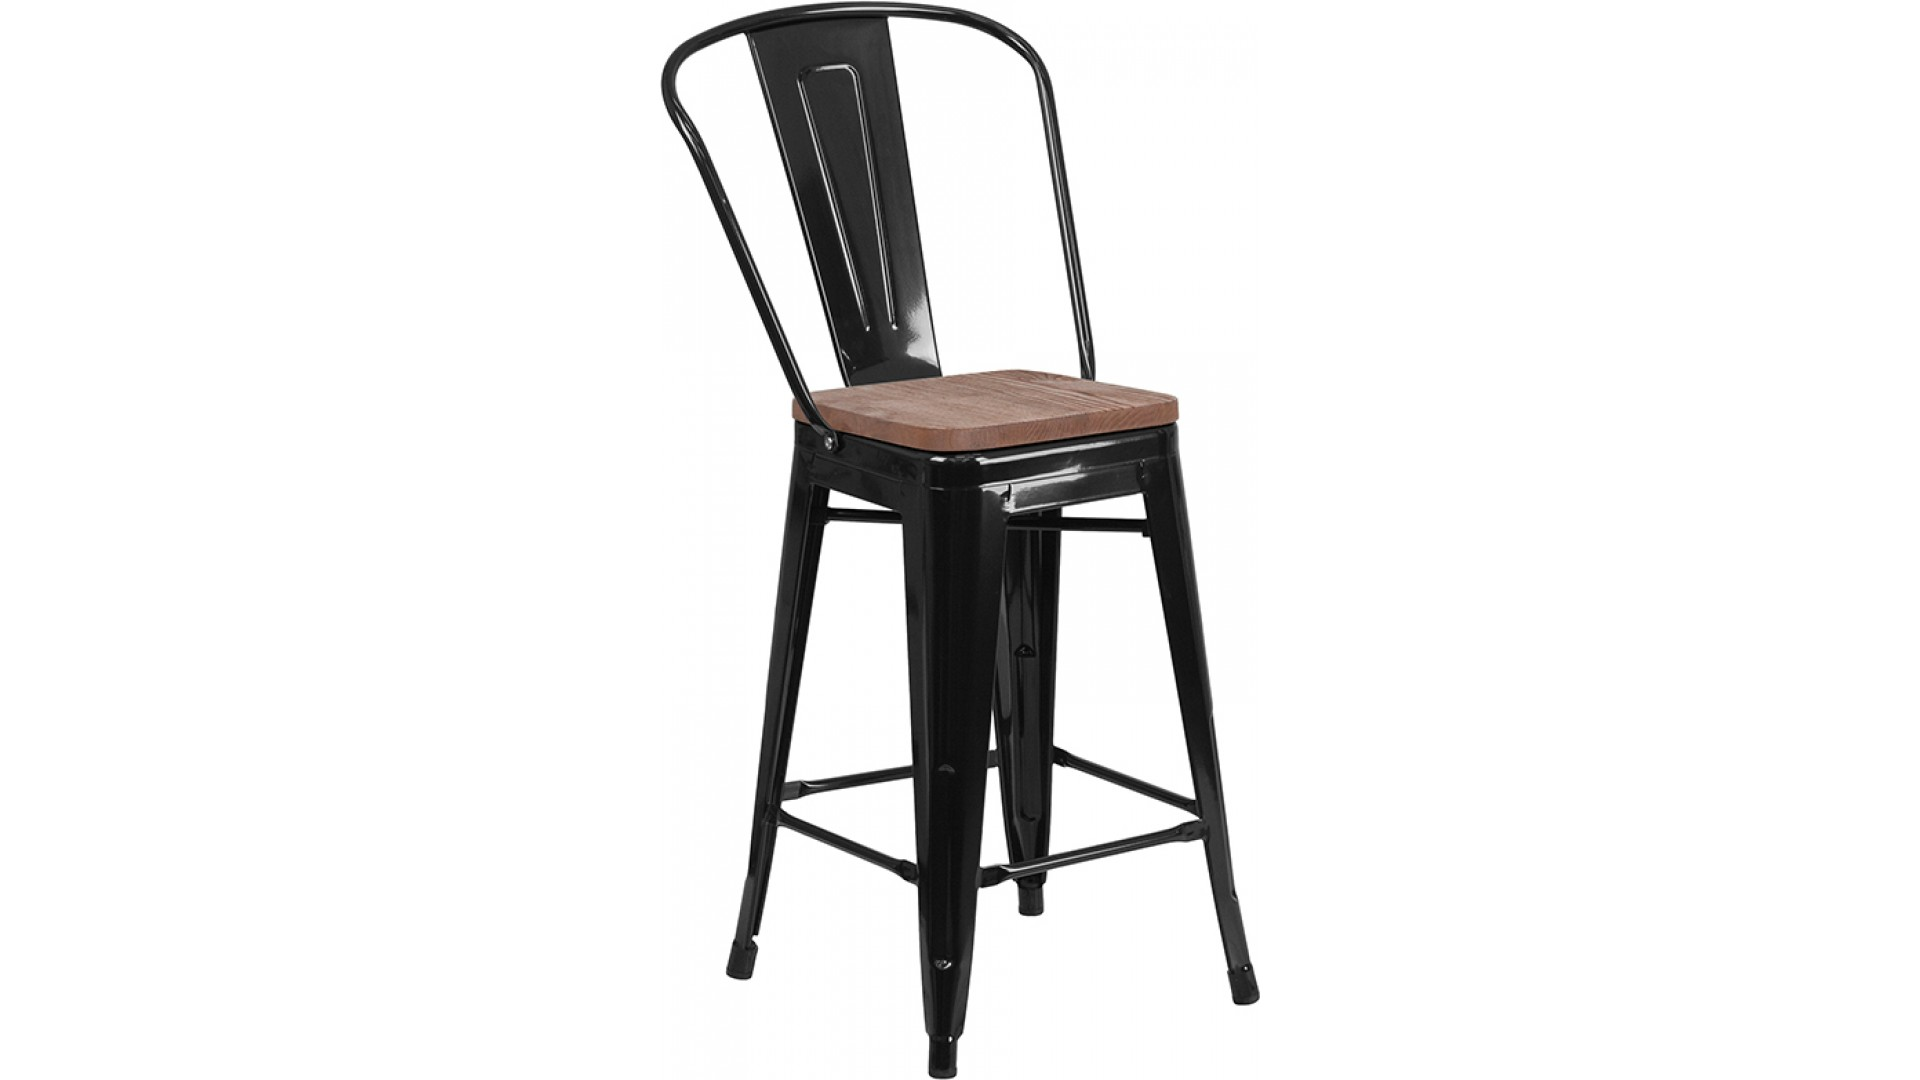 Barn Xo 24 Inch Metal Bar Stool With Wood Seat Black